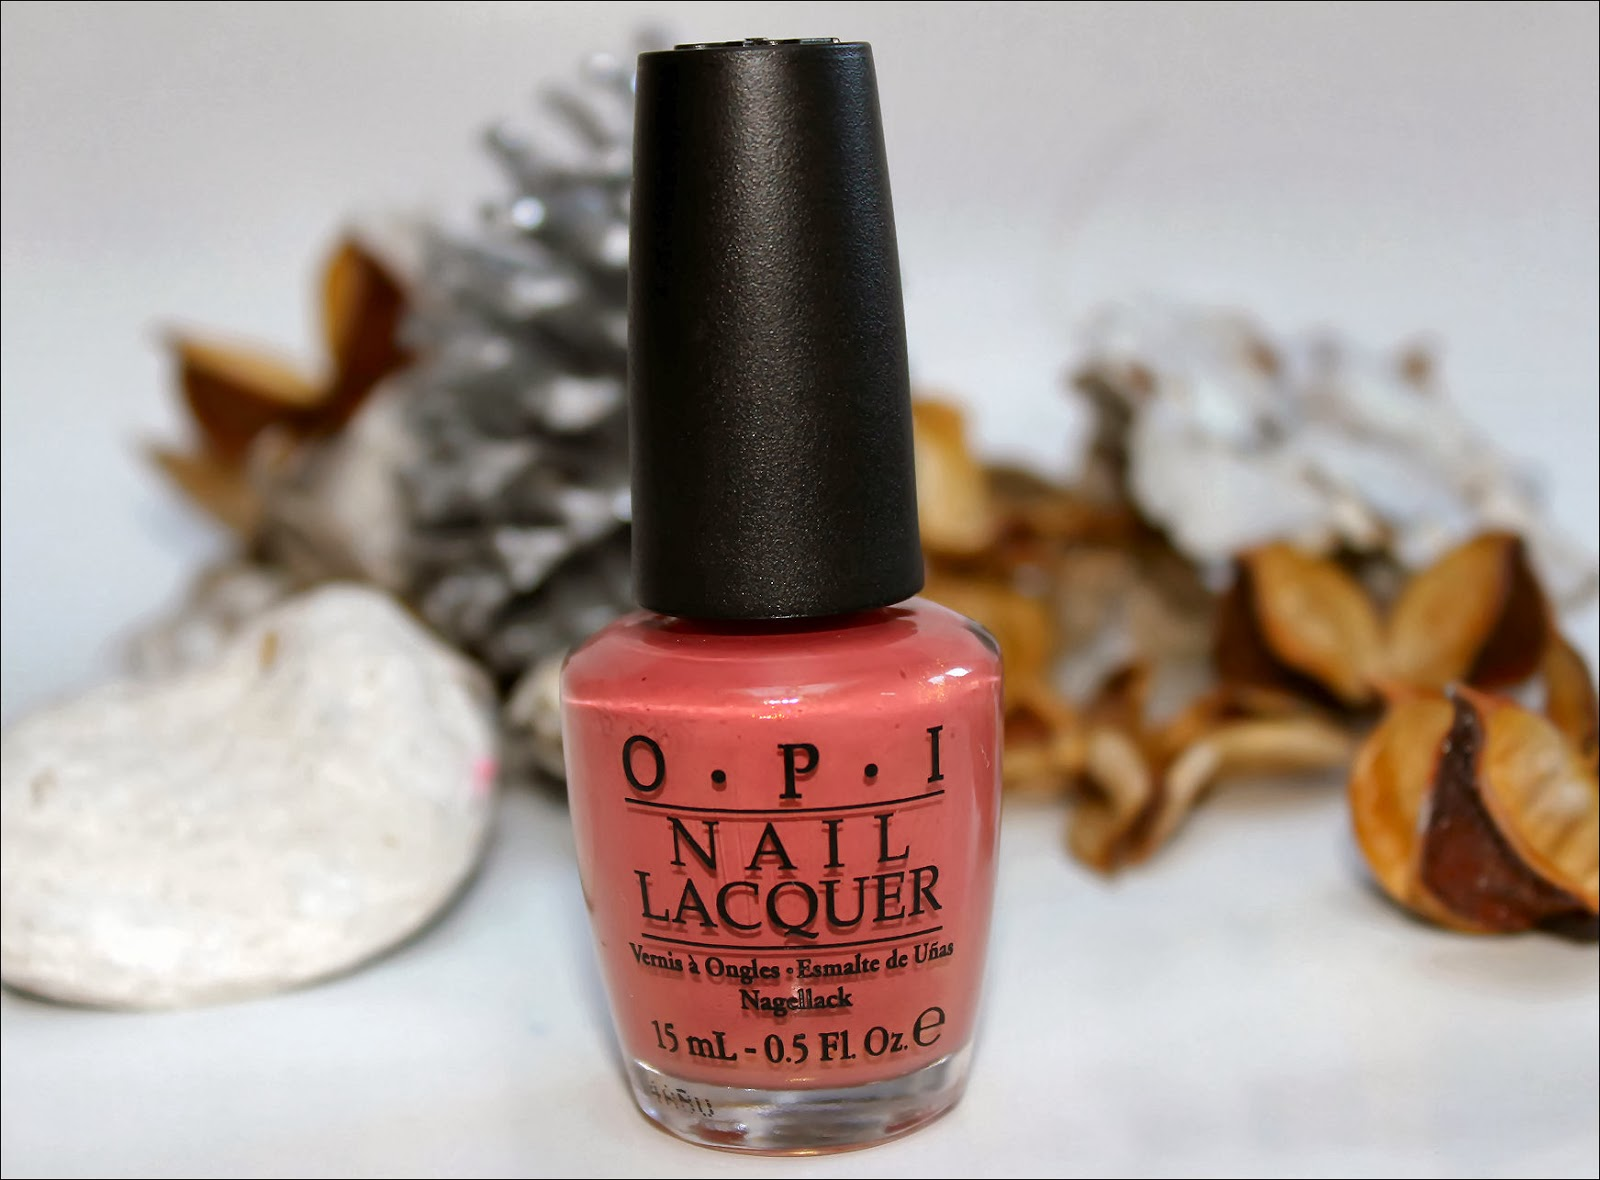 OPI Nail Lacquer in Gouda Gouda Two Shoes